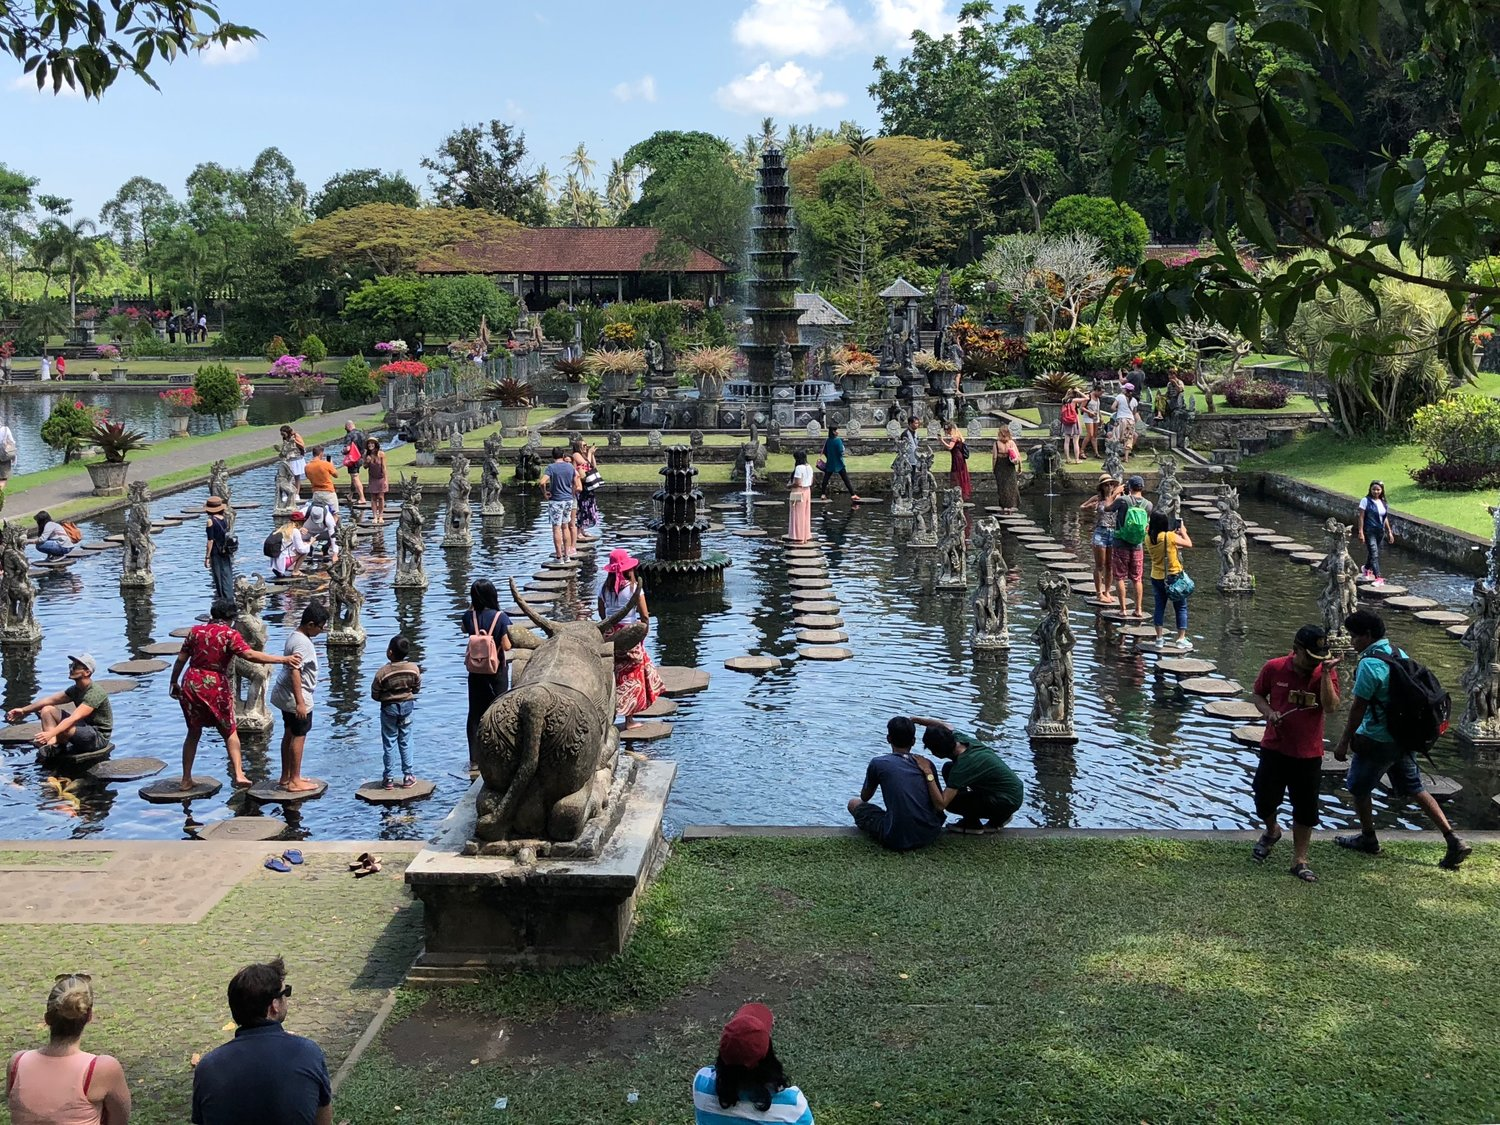 Tirta Gangga Royal Water Garden: The Splendors Of The Tirta Gangga Water Gardens